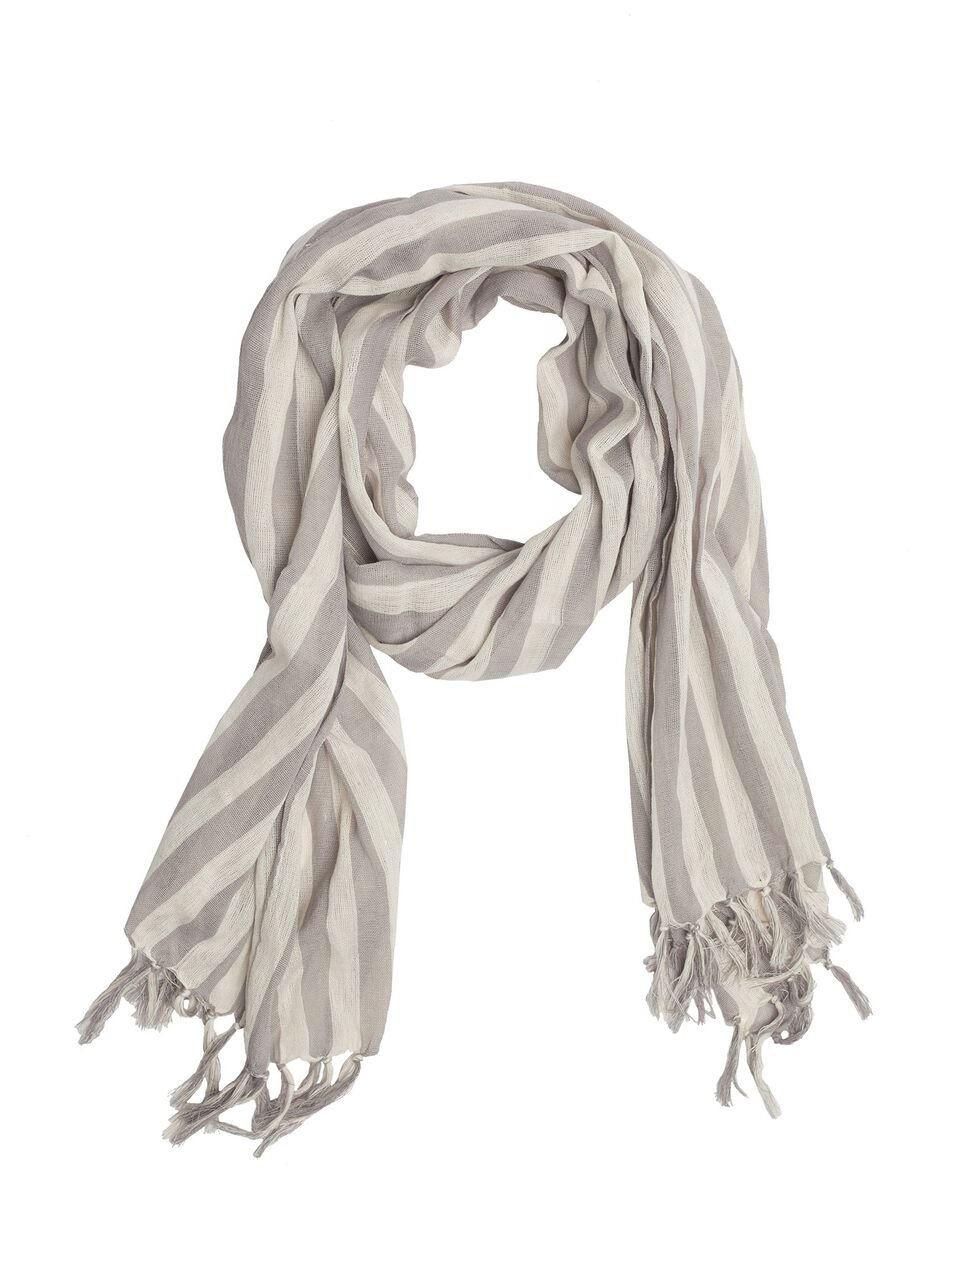 Aster Scarf   $38 | live fashionable